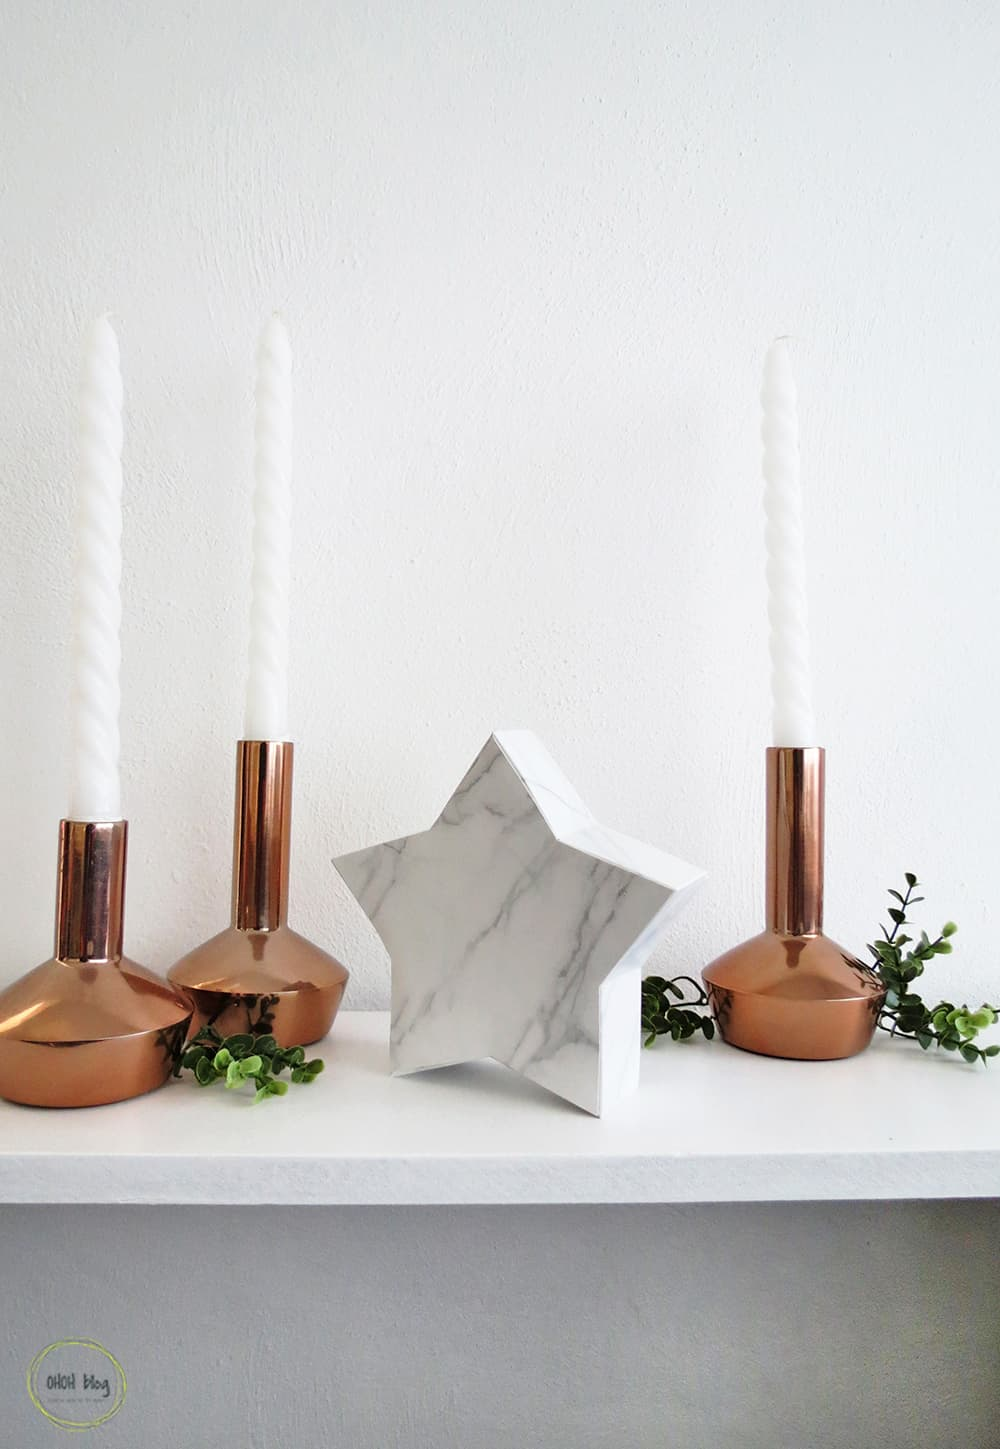 How to create a DIY scandinavian Christmas decor